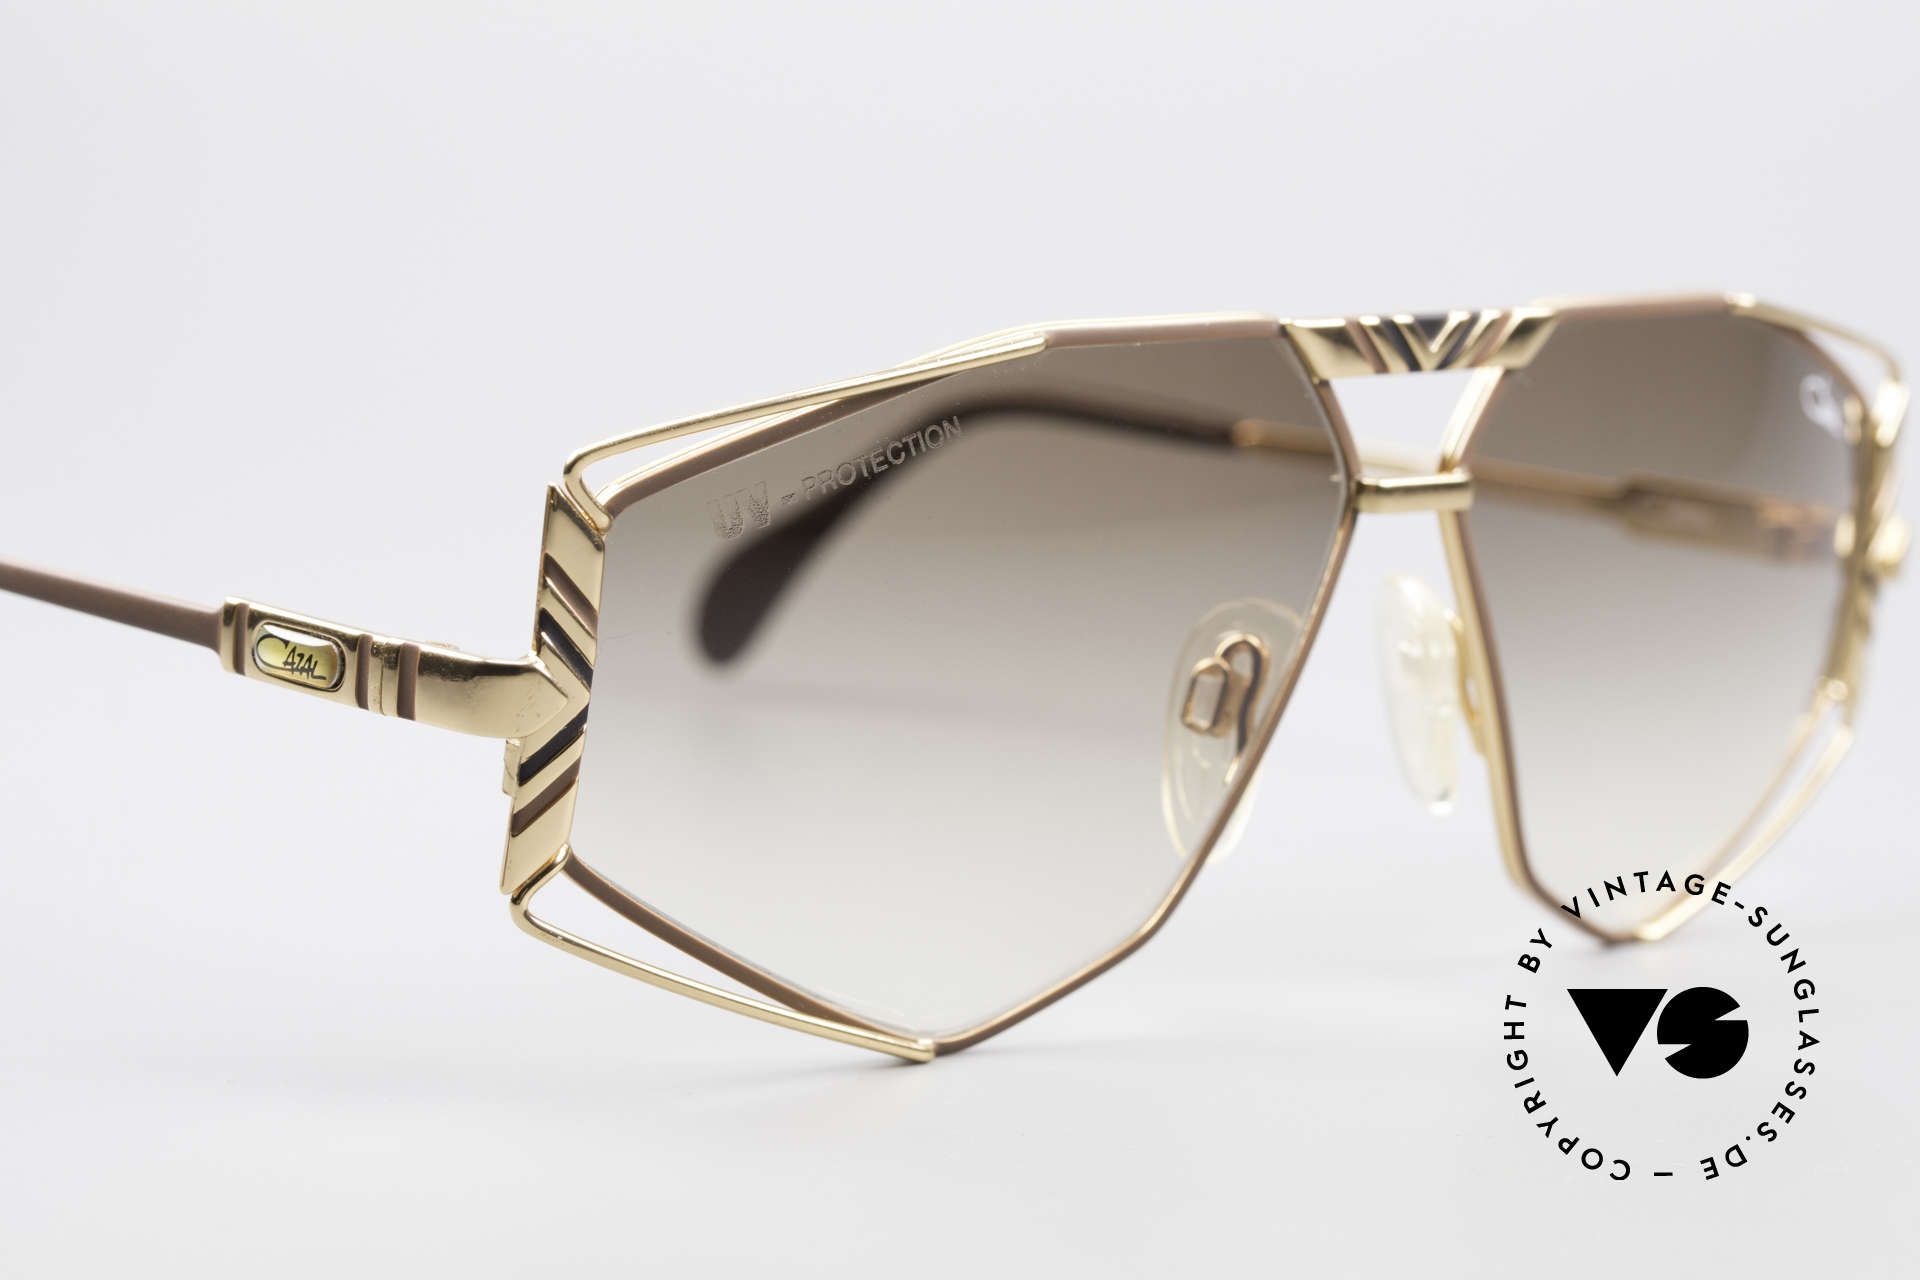 Cazal 956 Cari Zalloni Vintage Frame, NO RETRO fashion, but a rare old Cazal original!, Made for Men and Women